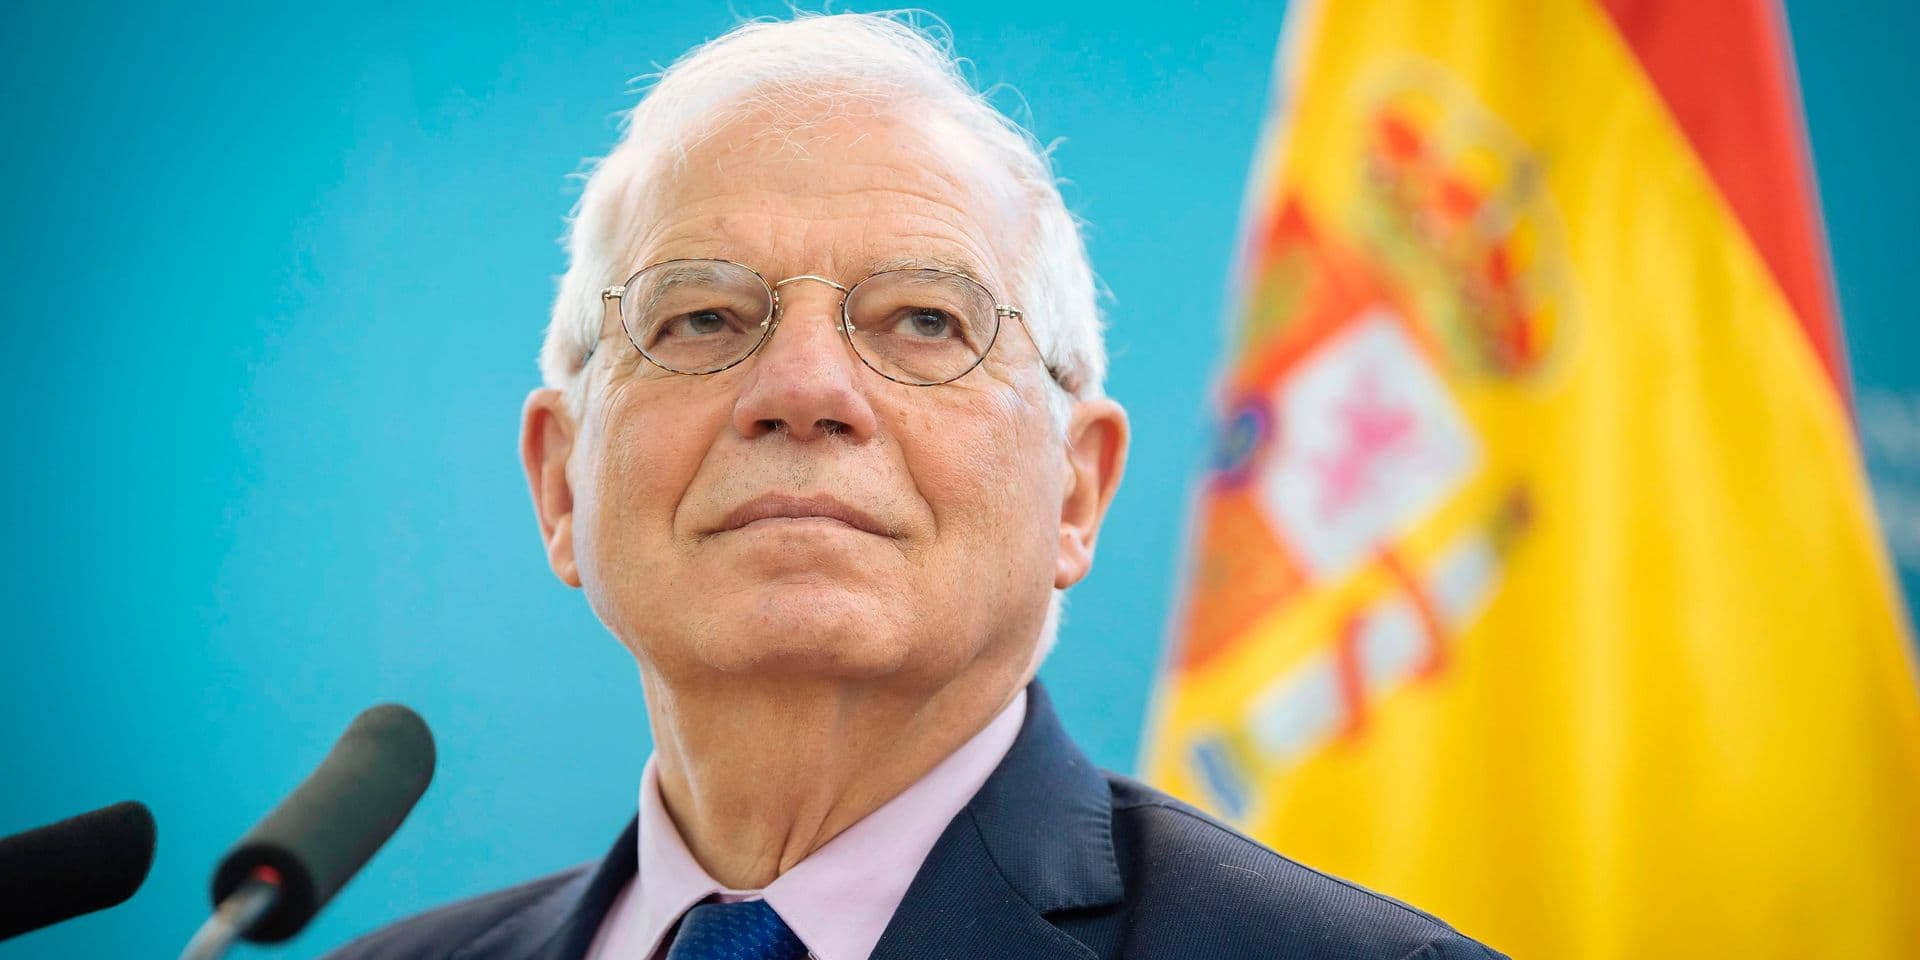 (FILES) In this file photo taken on April 9, 2019 Spain's Foreign Minister Josep Borrell attends a press conference after meeting with his Slovenian counterpart in Ljubljana. - Josep Borrell was appointed head of the European diplomacy on July 2, 2019. (Photo by Jure Makovec / AFP)